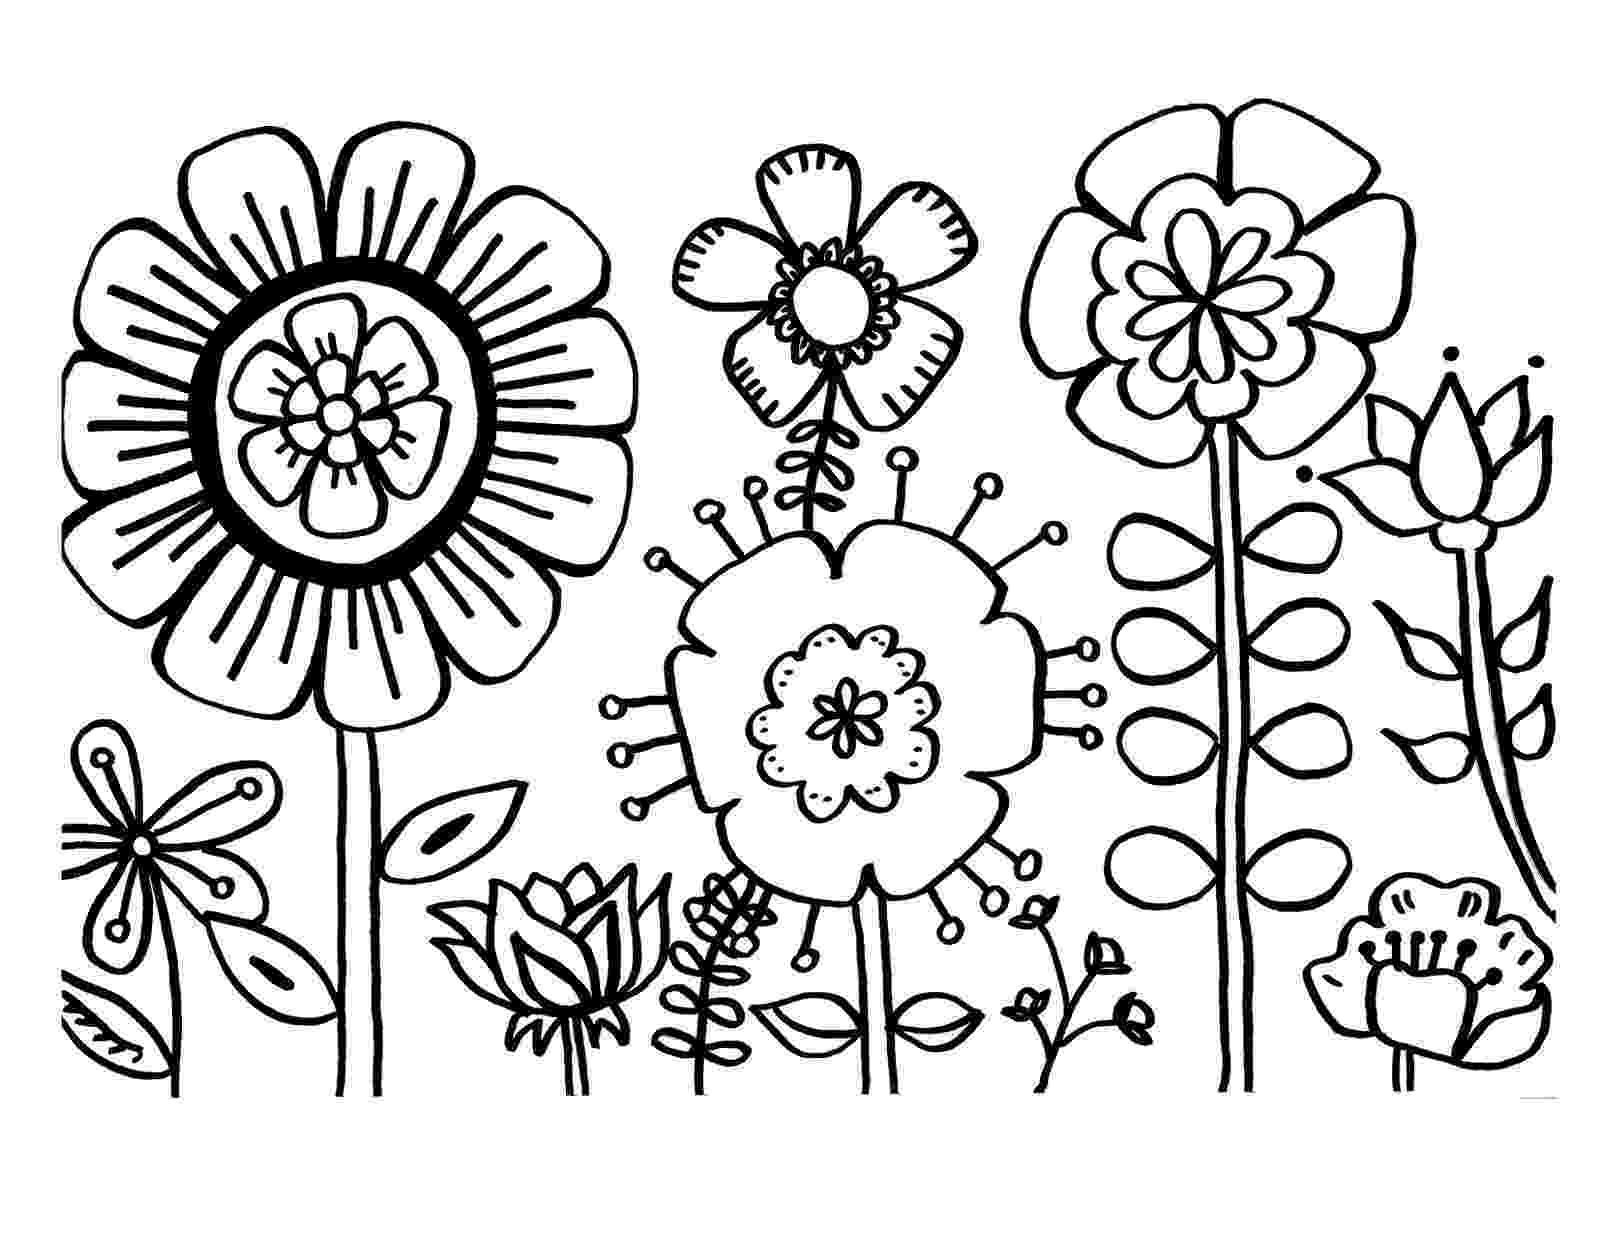 flowers printable coloring pages free printable flower coloring pages for kids best coloring flowers pages printable